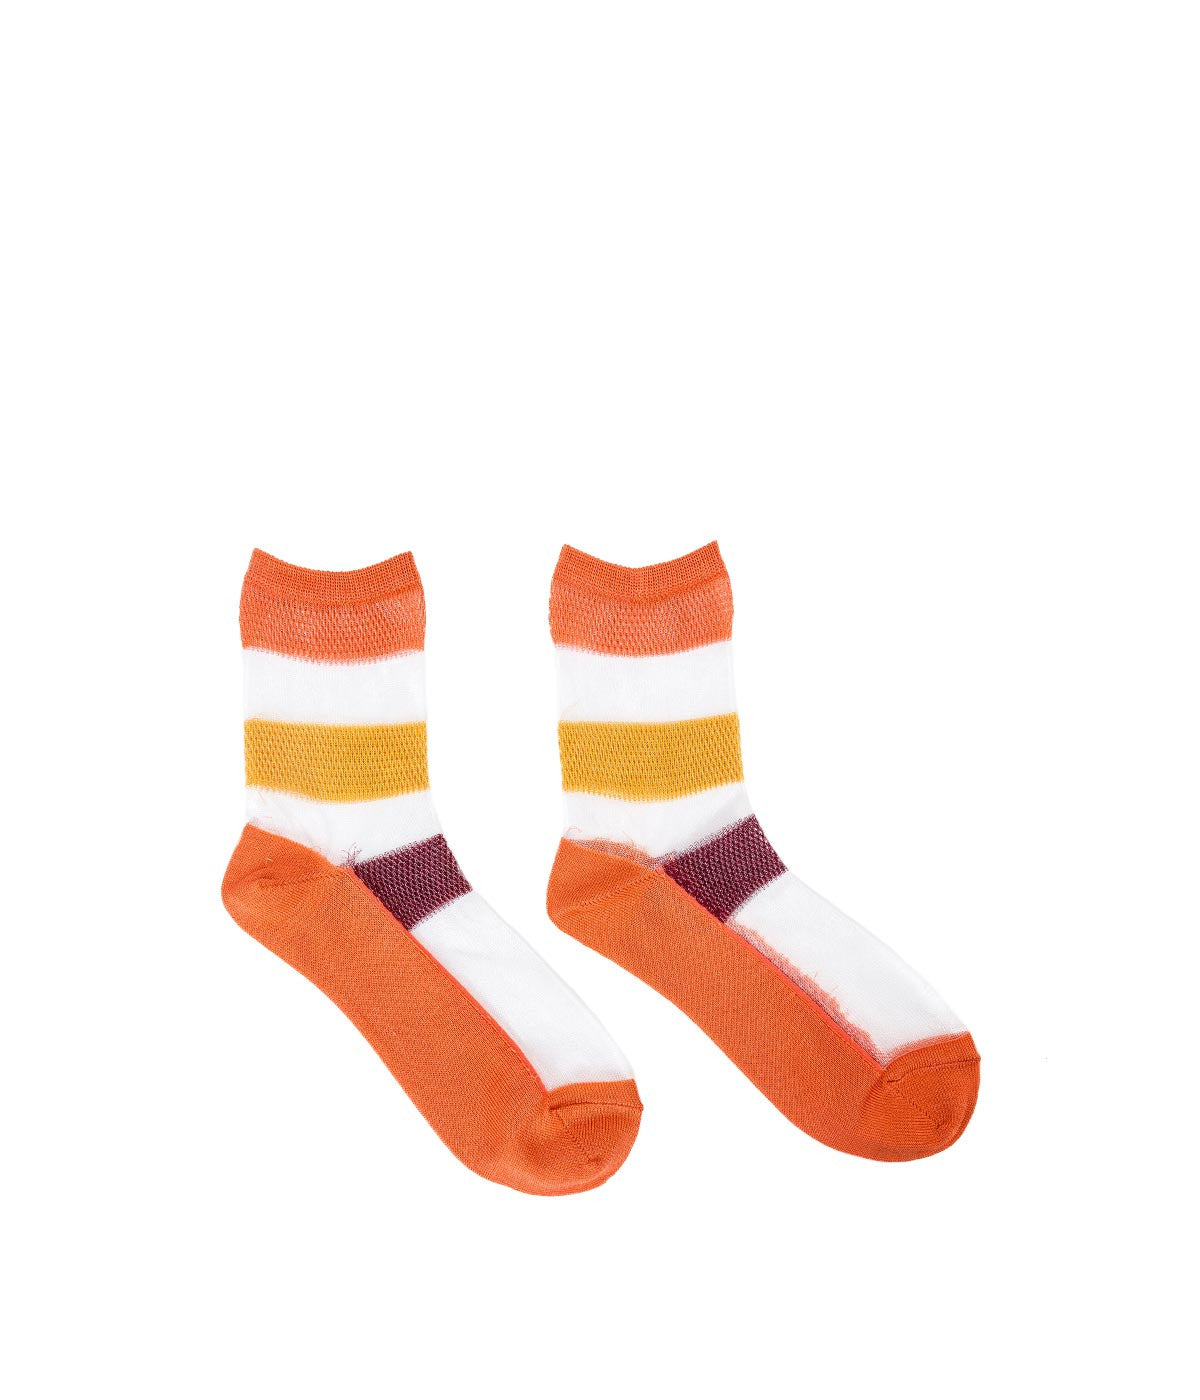 Orange Sheer Socks